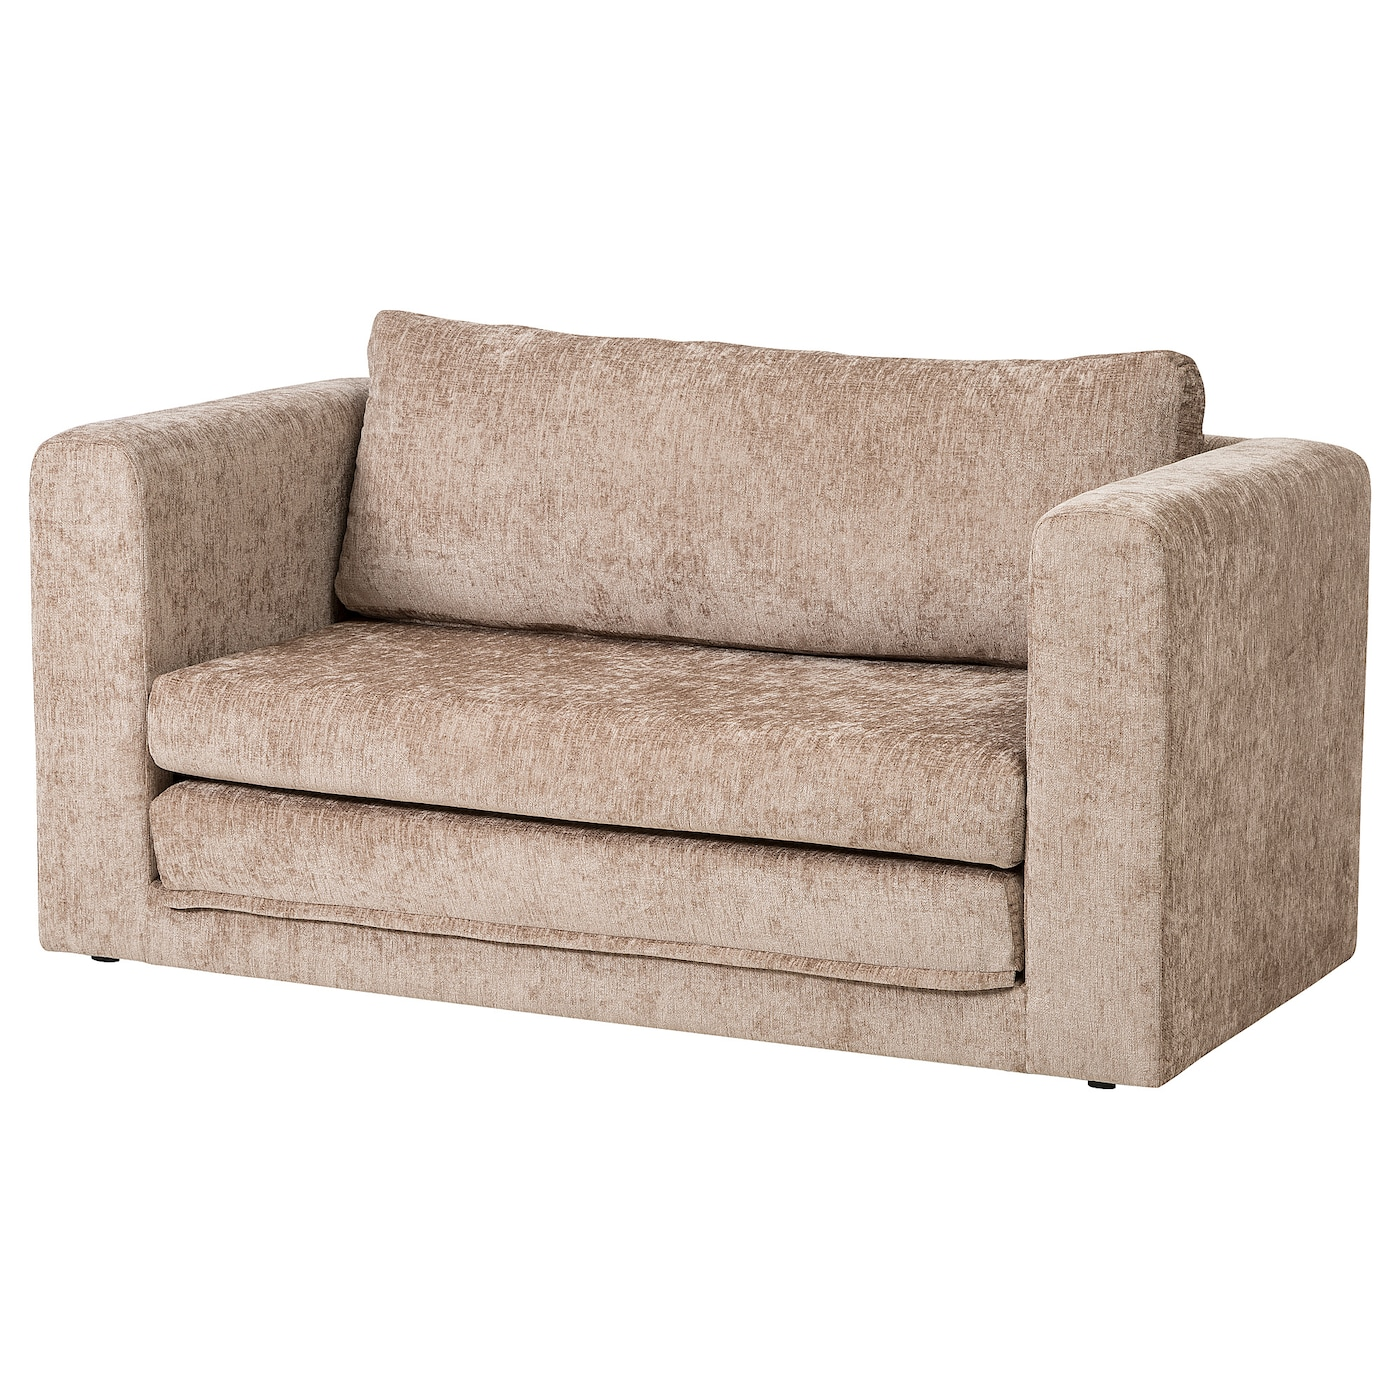 Ikea sofa beds discontinued ikea sofa beds ikea for Furniture sofa bed